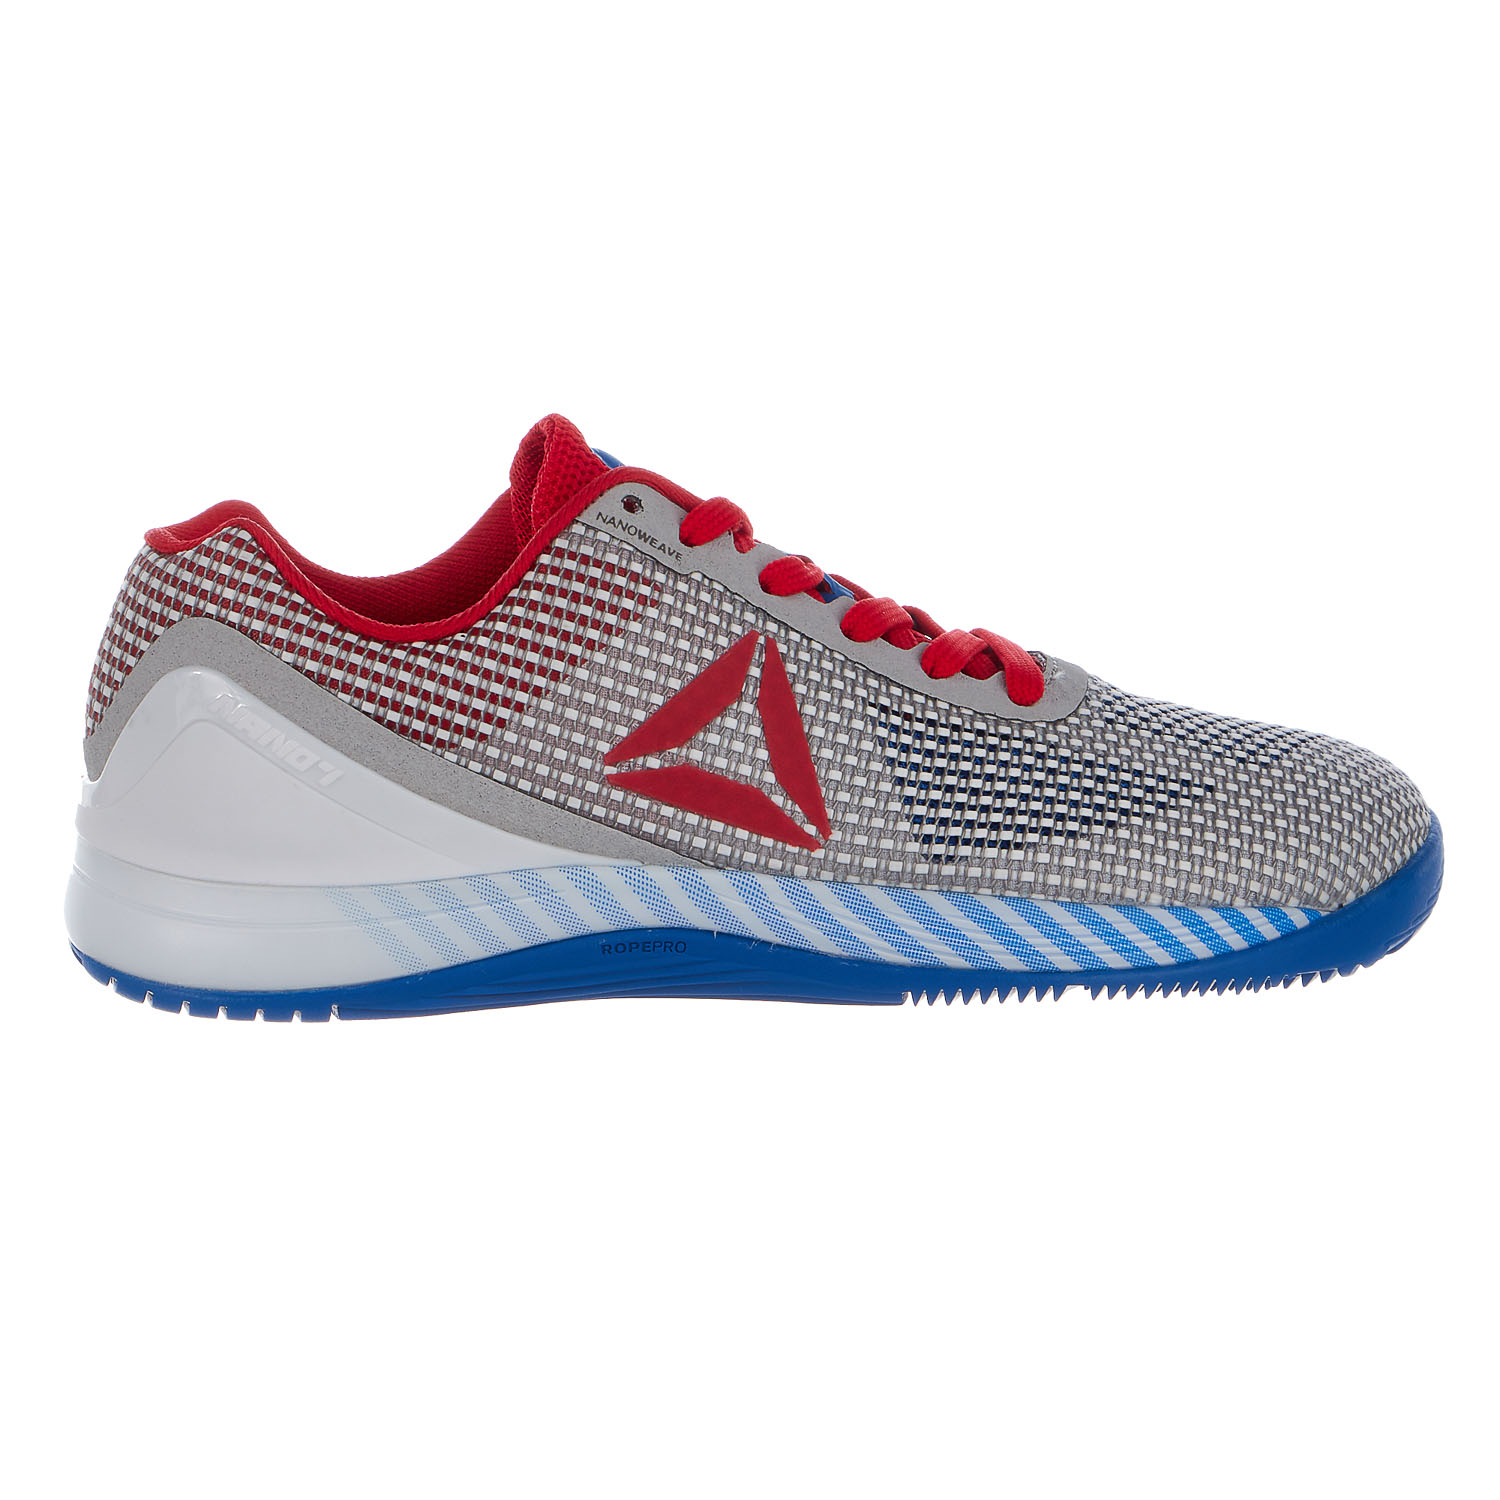 Reebok Crossfit Nano 7 Womens by Reebok